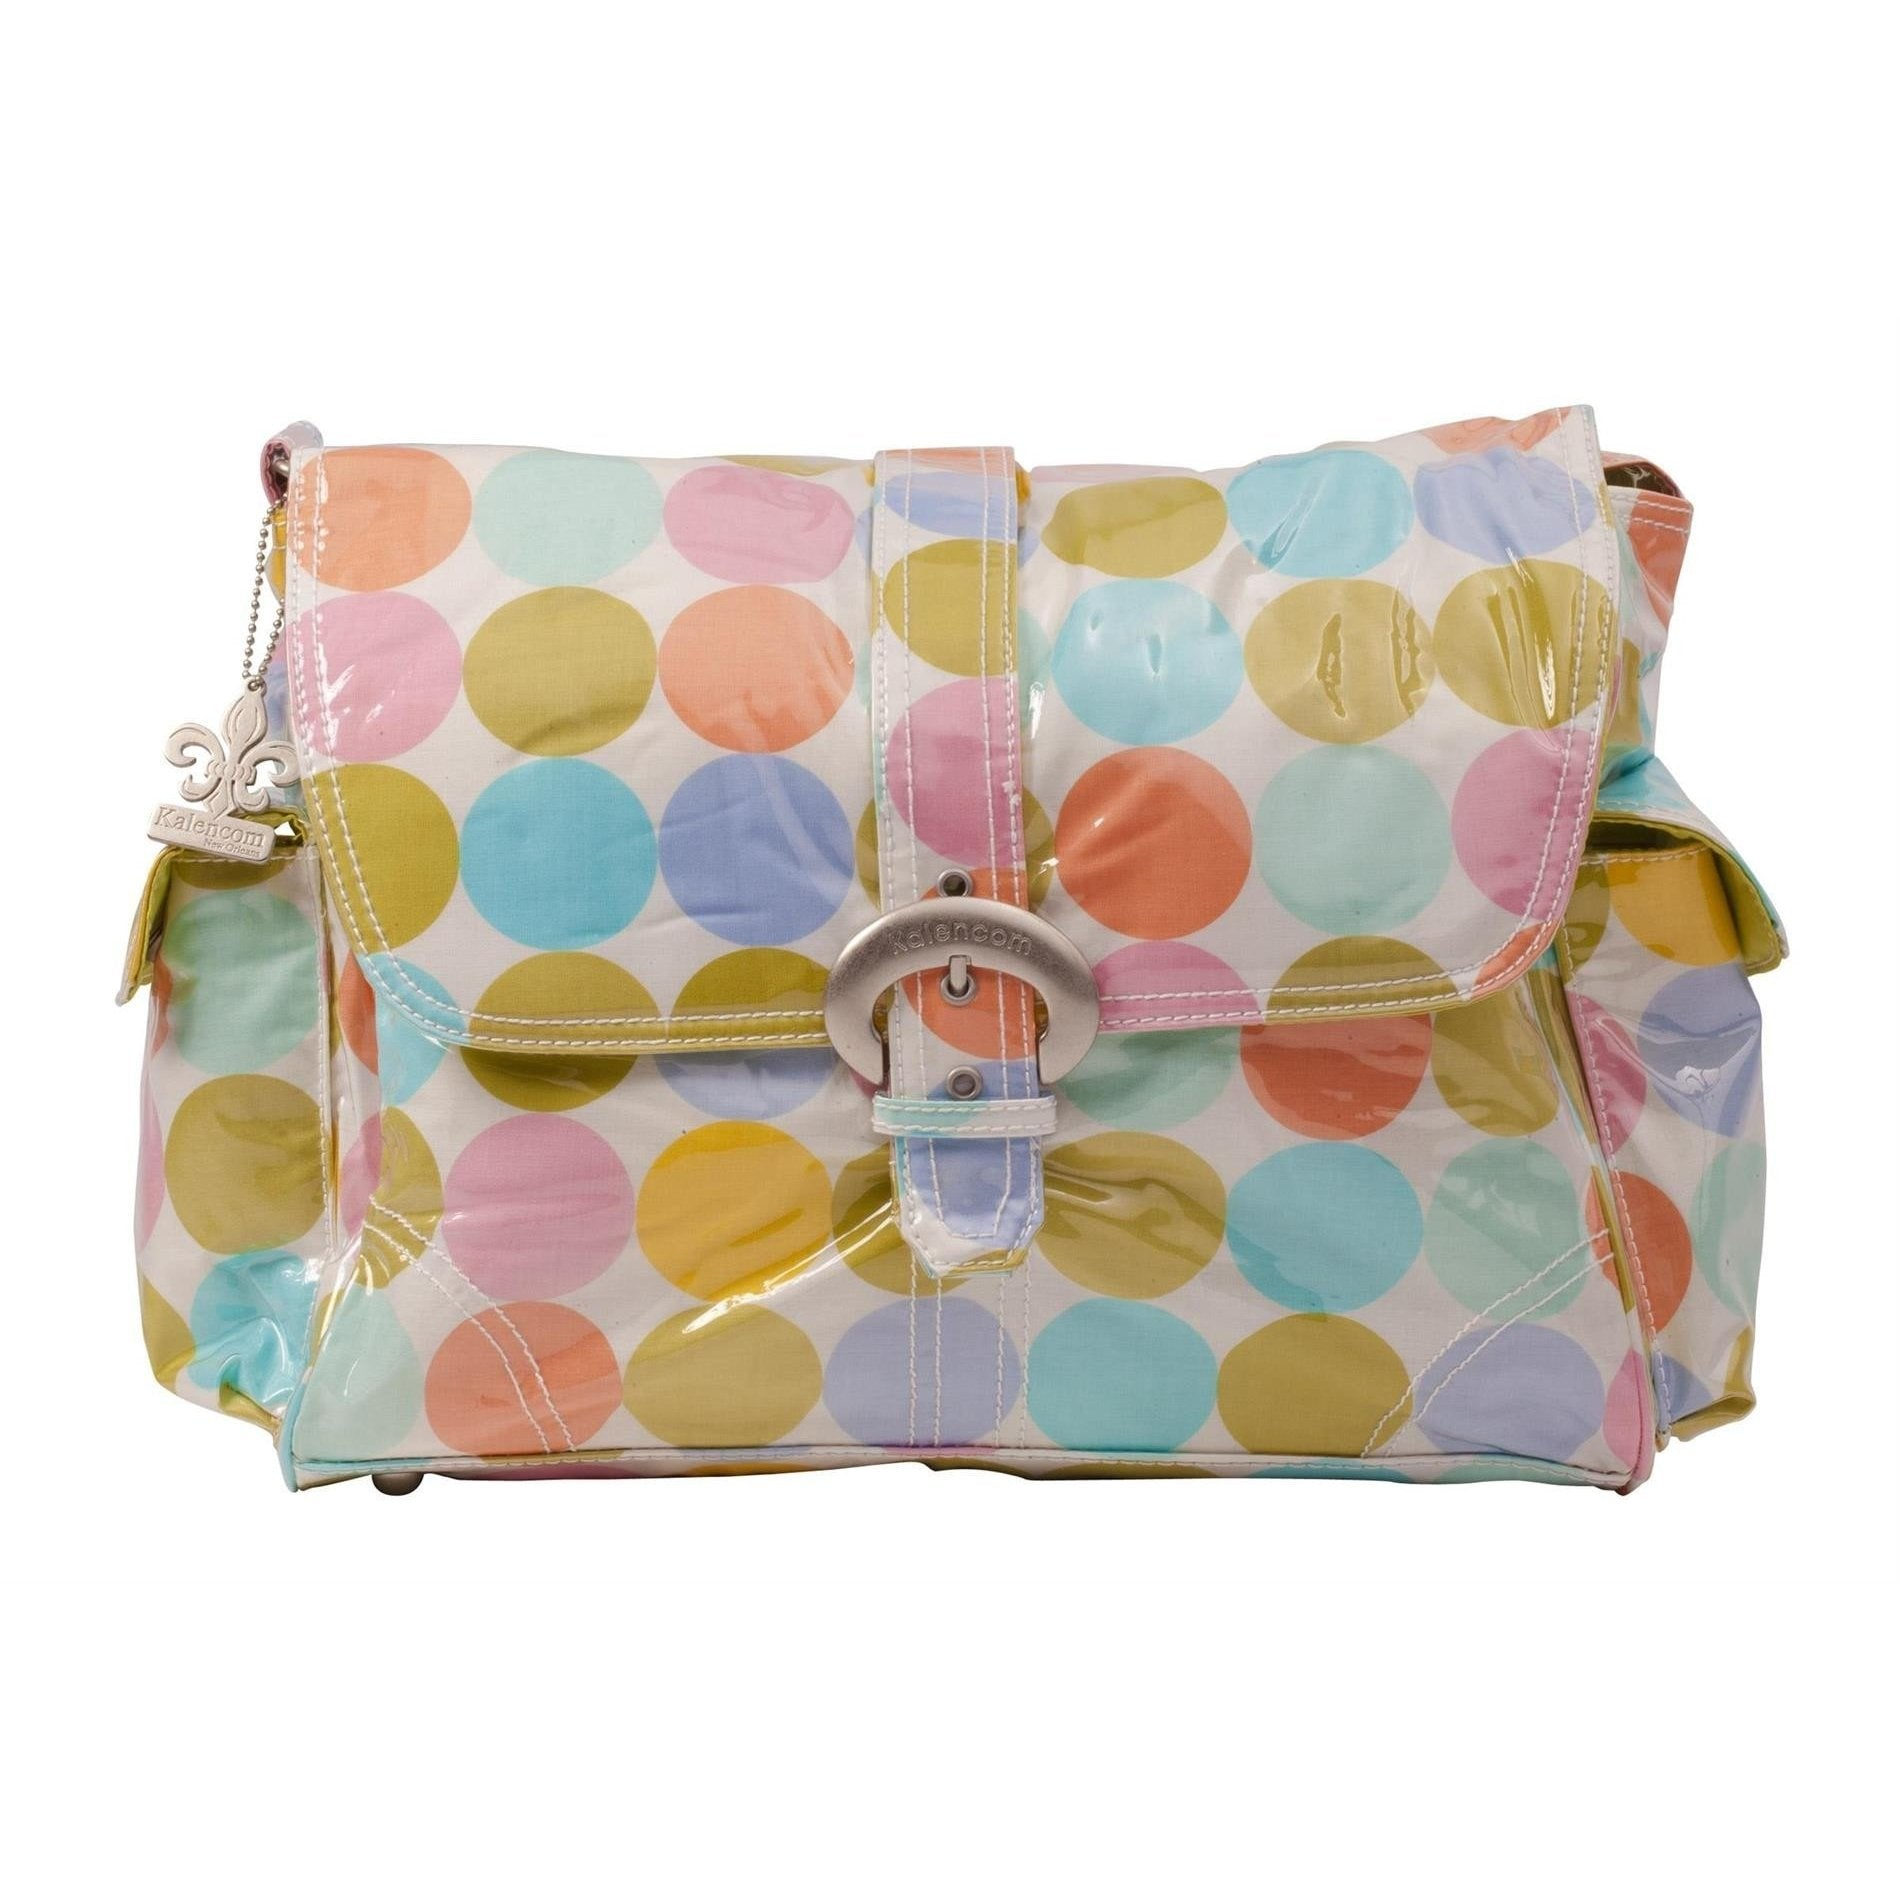 Disco Dots Cream Laminated Buckle Diaper Bag | Style 2960 - Kalencom-Diaper Bags-Jack and Jill Boutique